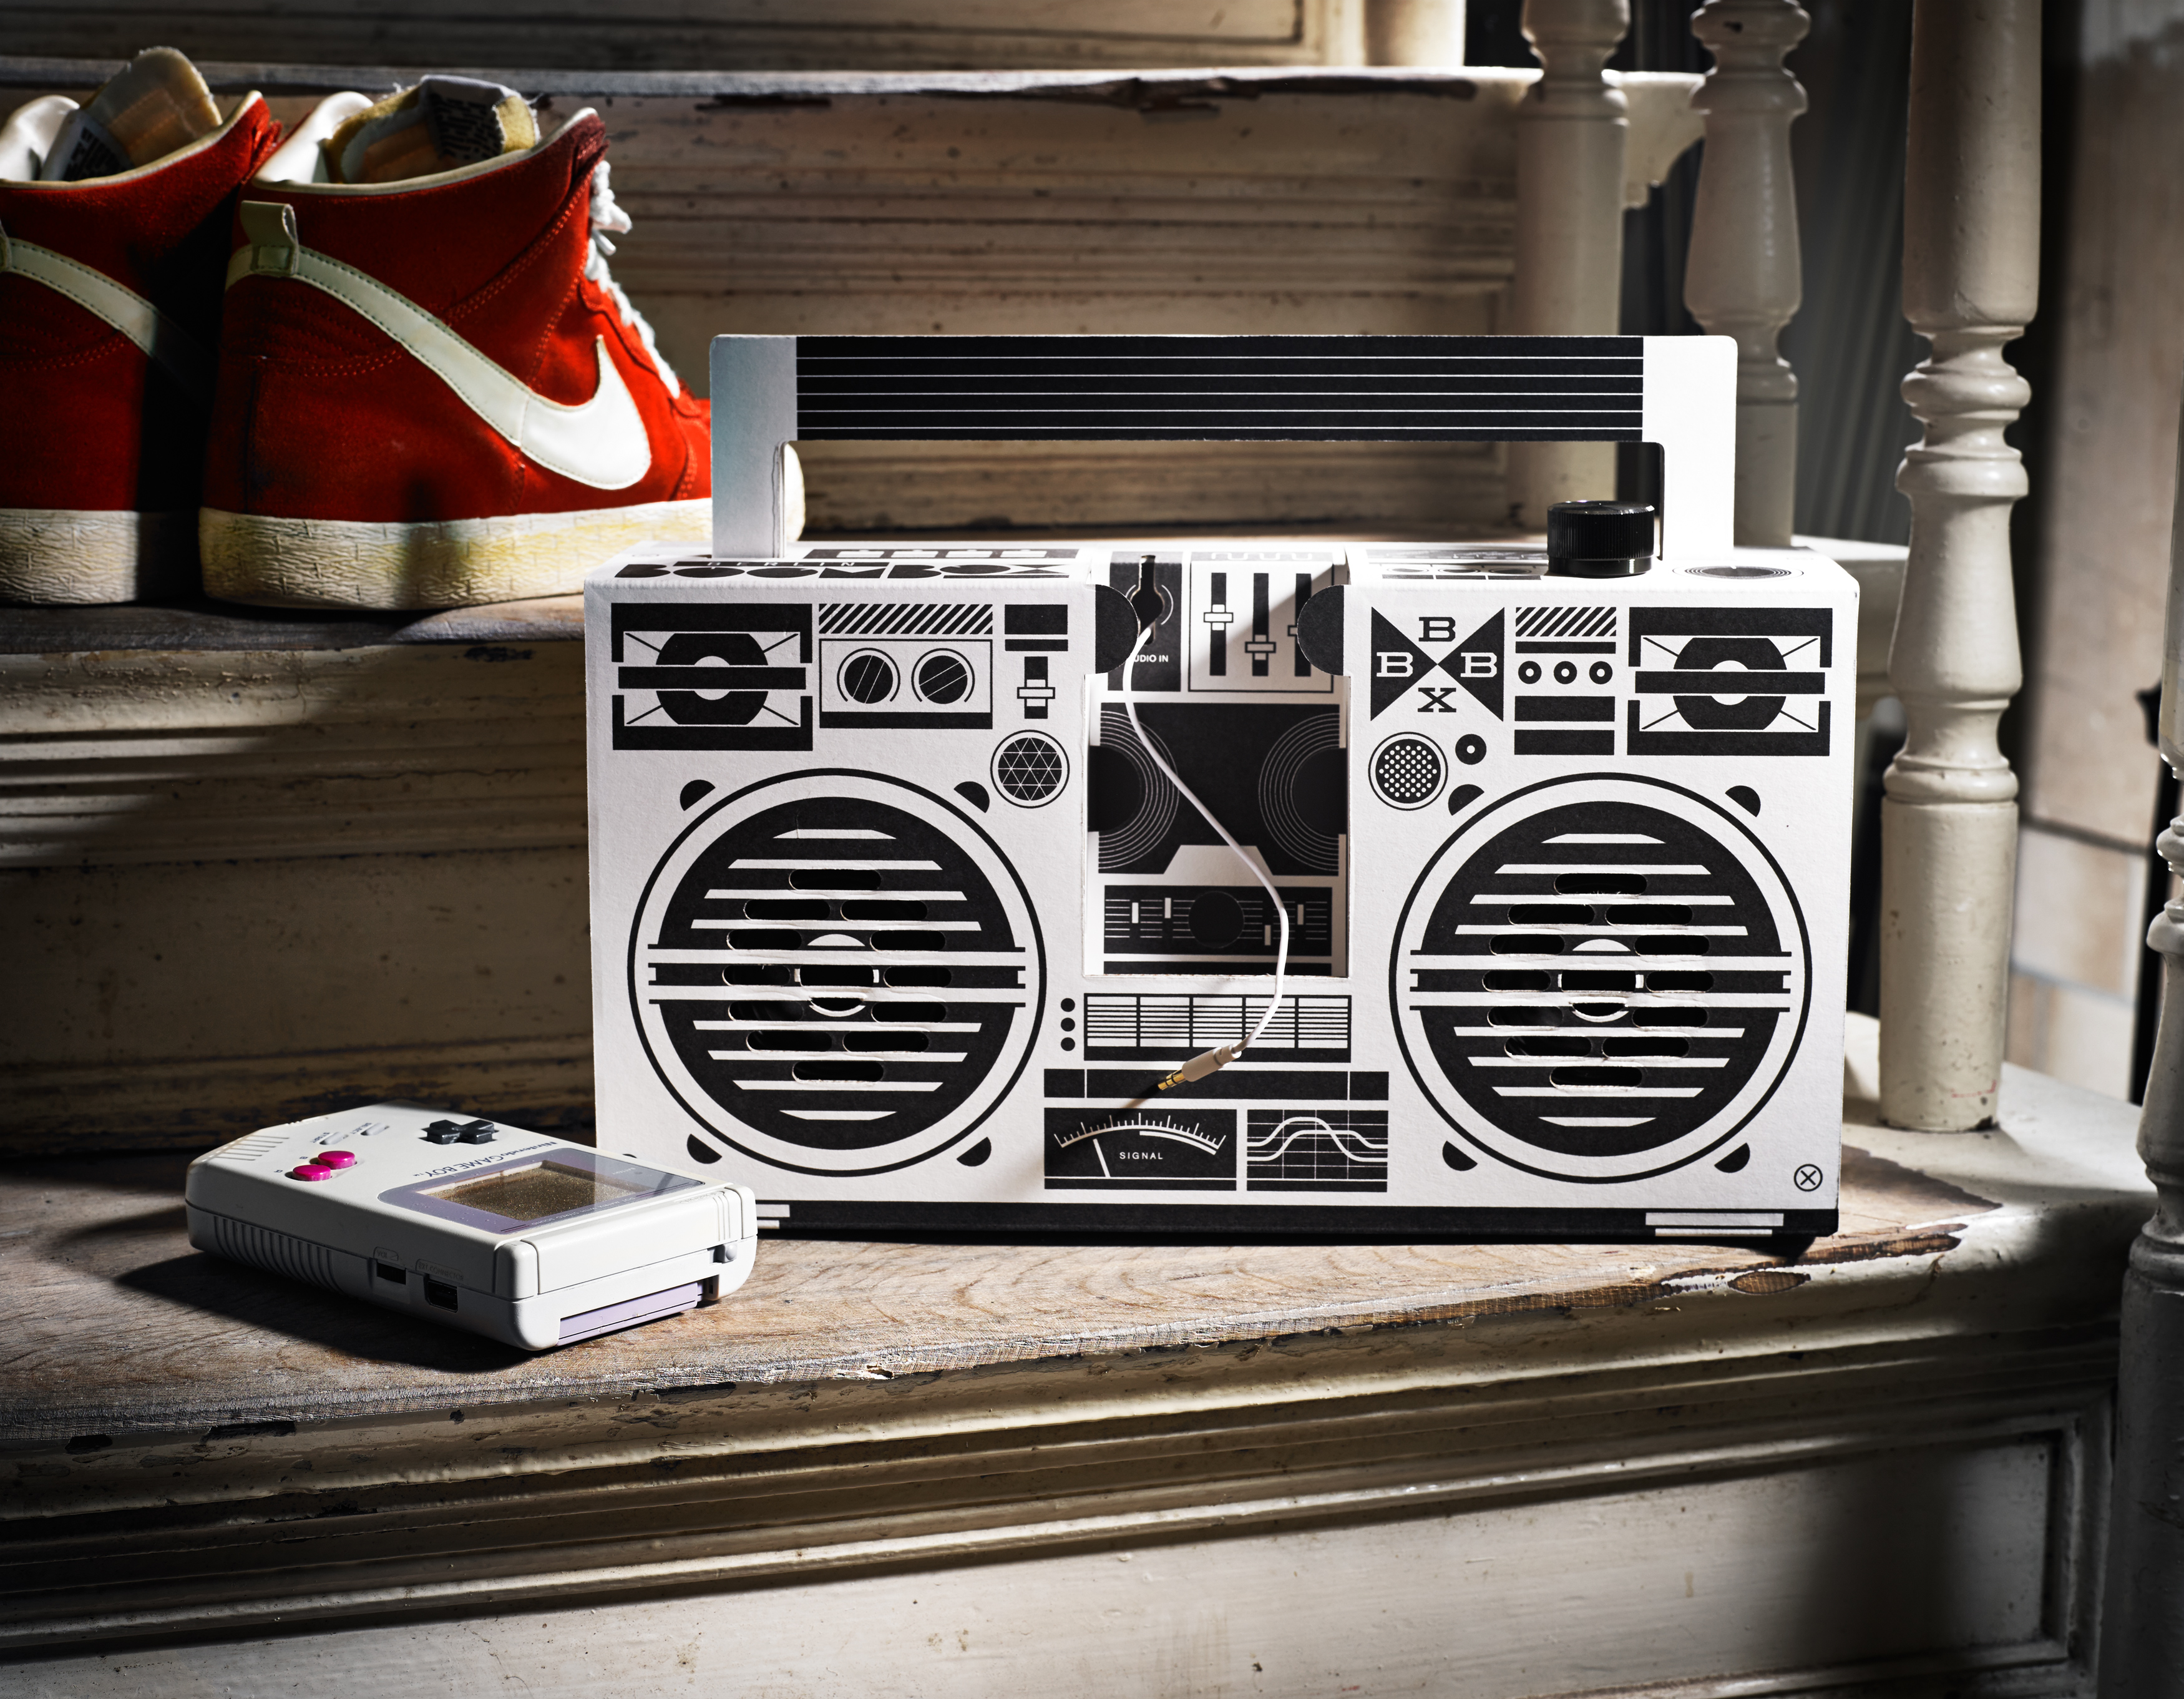 INTRODUCING THE BERLIN BOOMBOX!!